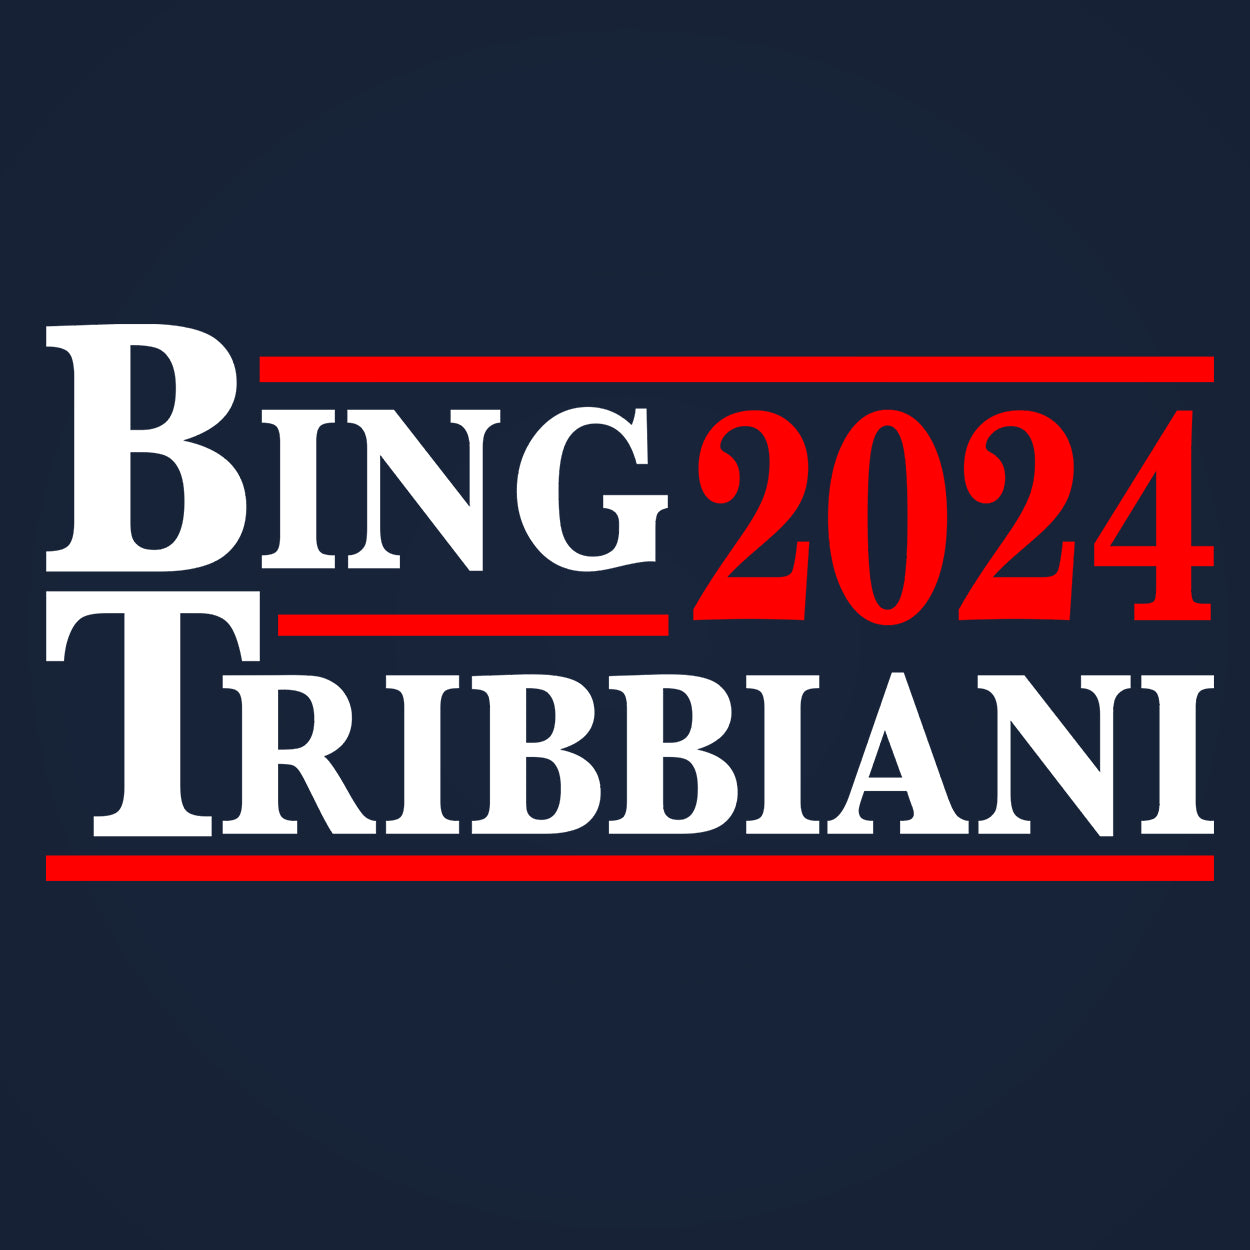 BING TRIBBIANI 2020 Election - DonkeyTees